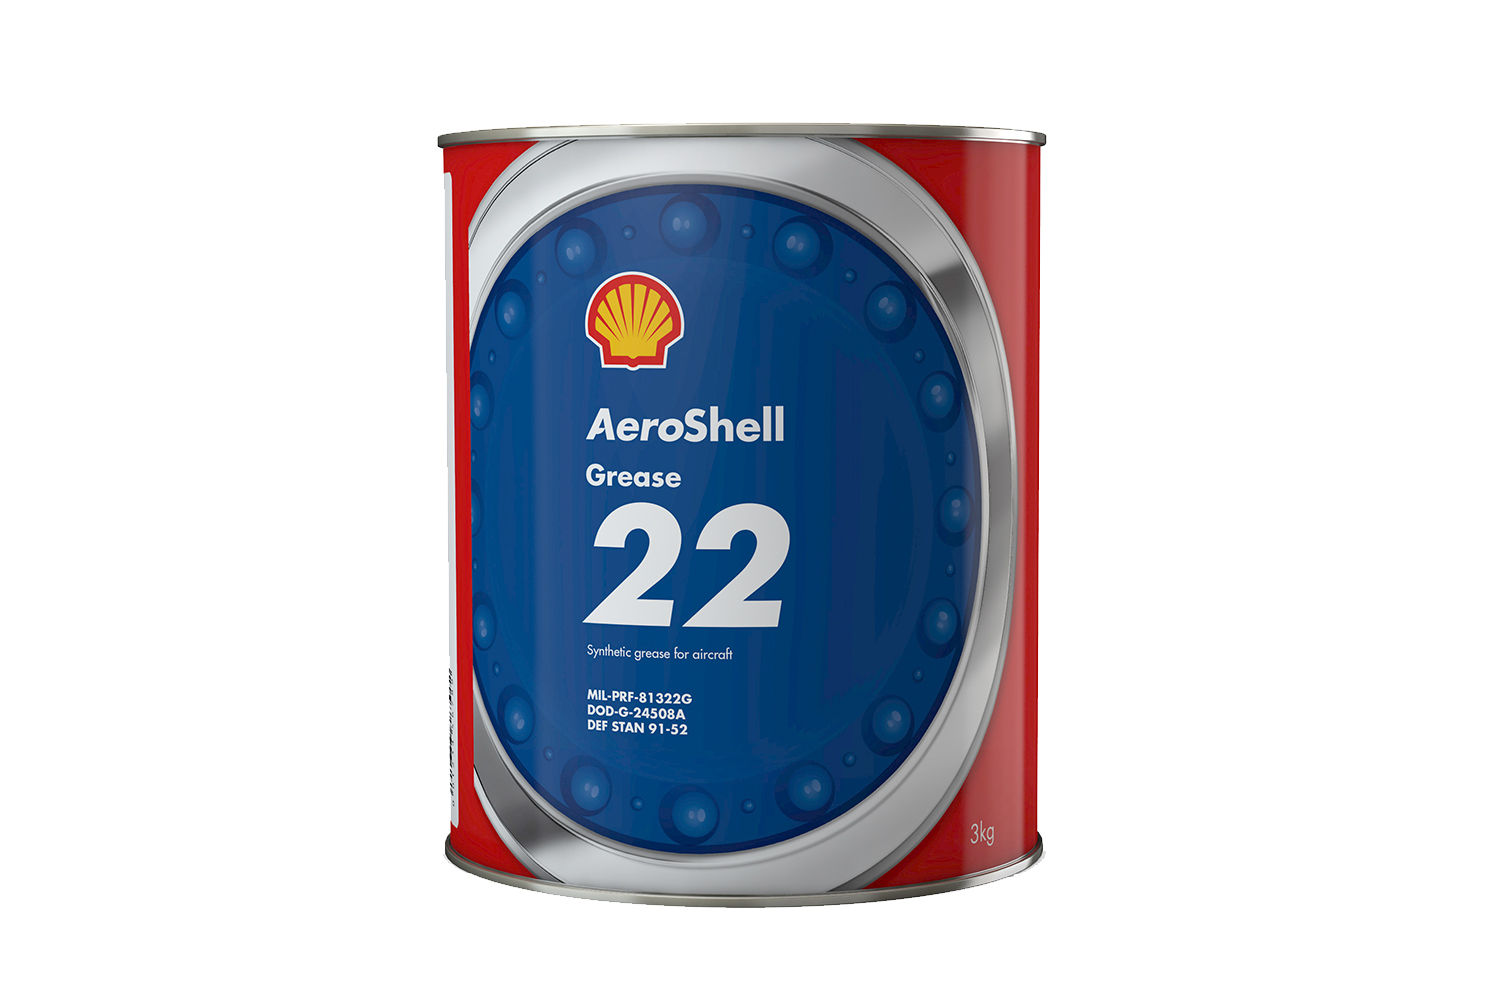 images/j2store/products/diffusees/34147-aeroshell-grease-22-3KG.jpg